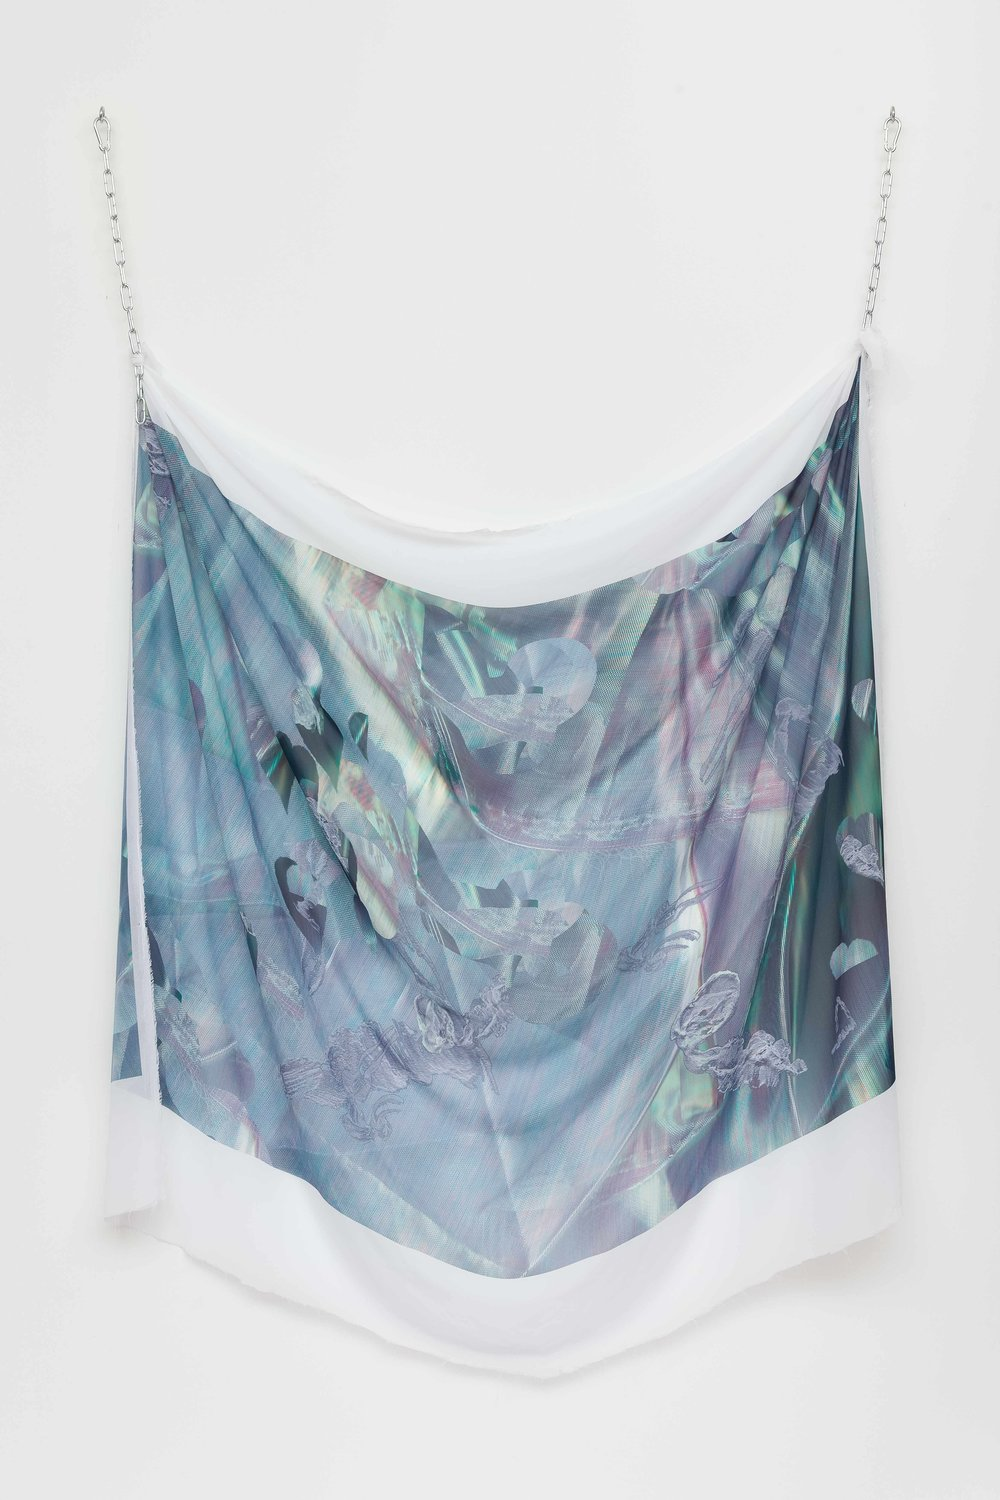 Interference , digital print on chiffon, iridescent paint and metal chains, 160 x 145cm  Photo: Docqment   Enquire